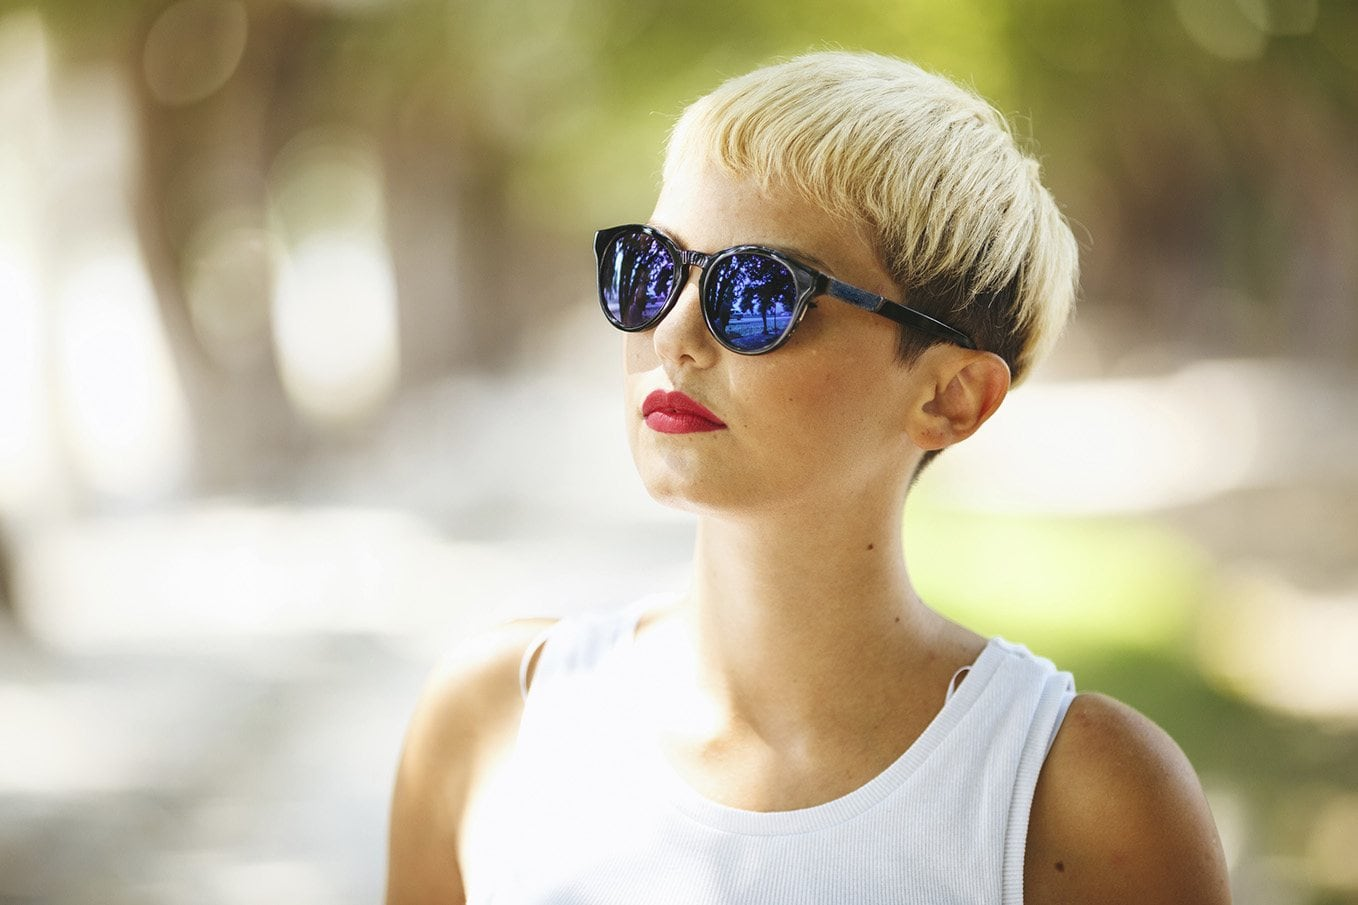 How short should I cut my hair? Woman with summery-looking bleached blonde bowl cut and dark undercut